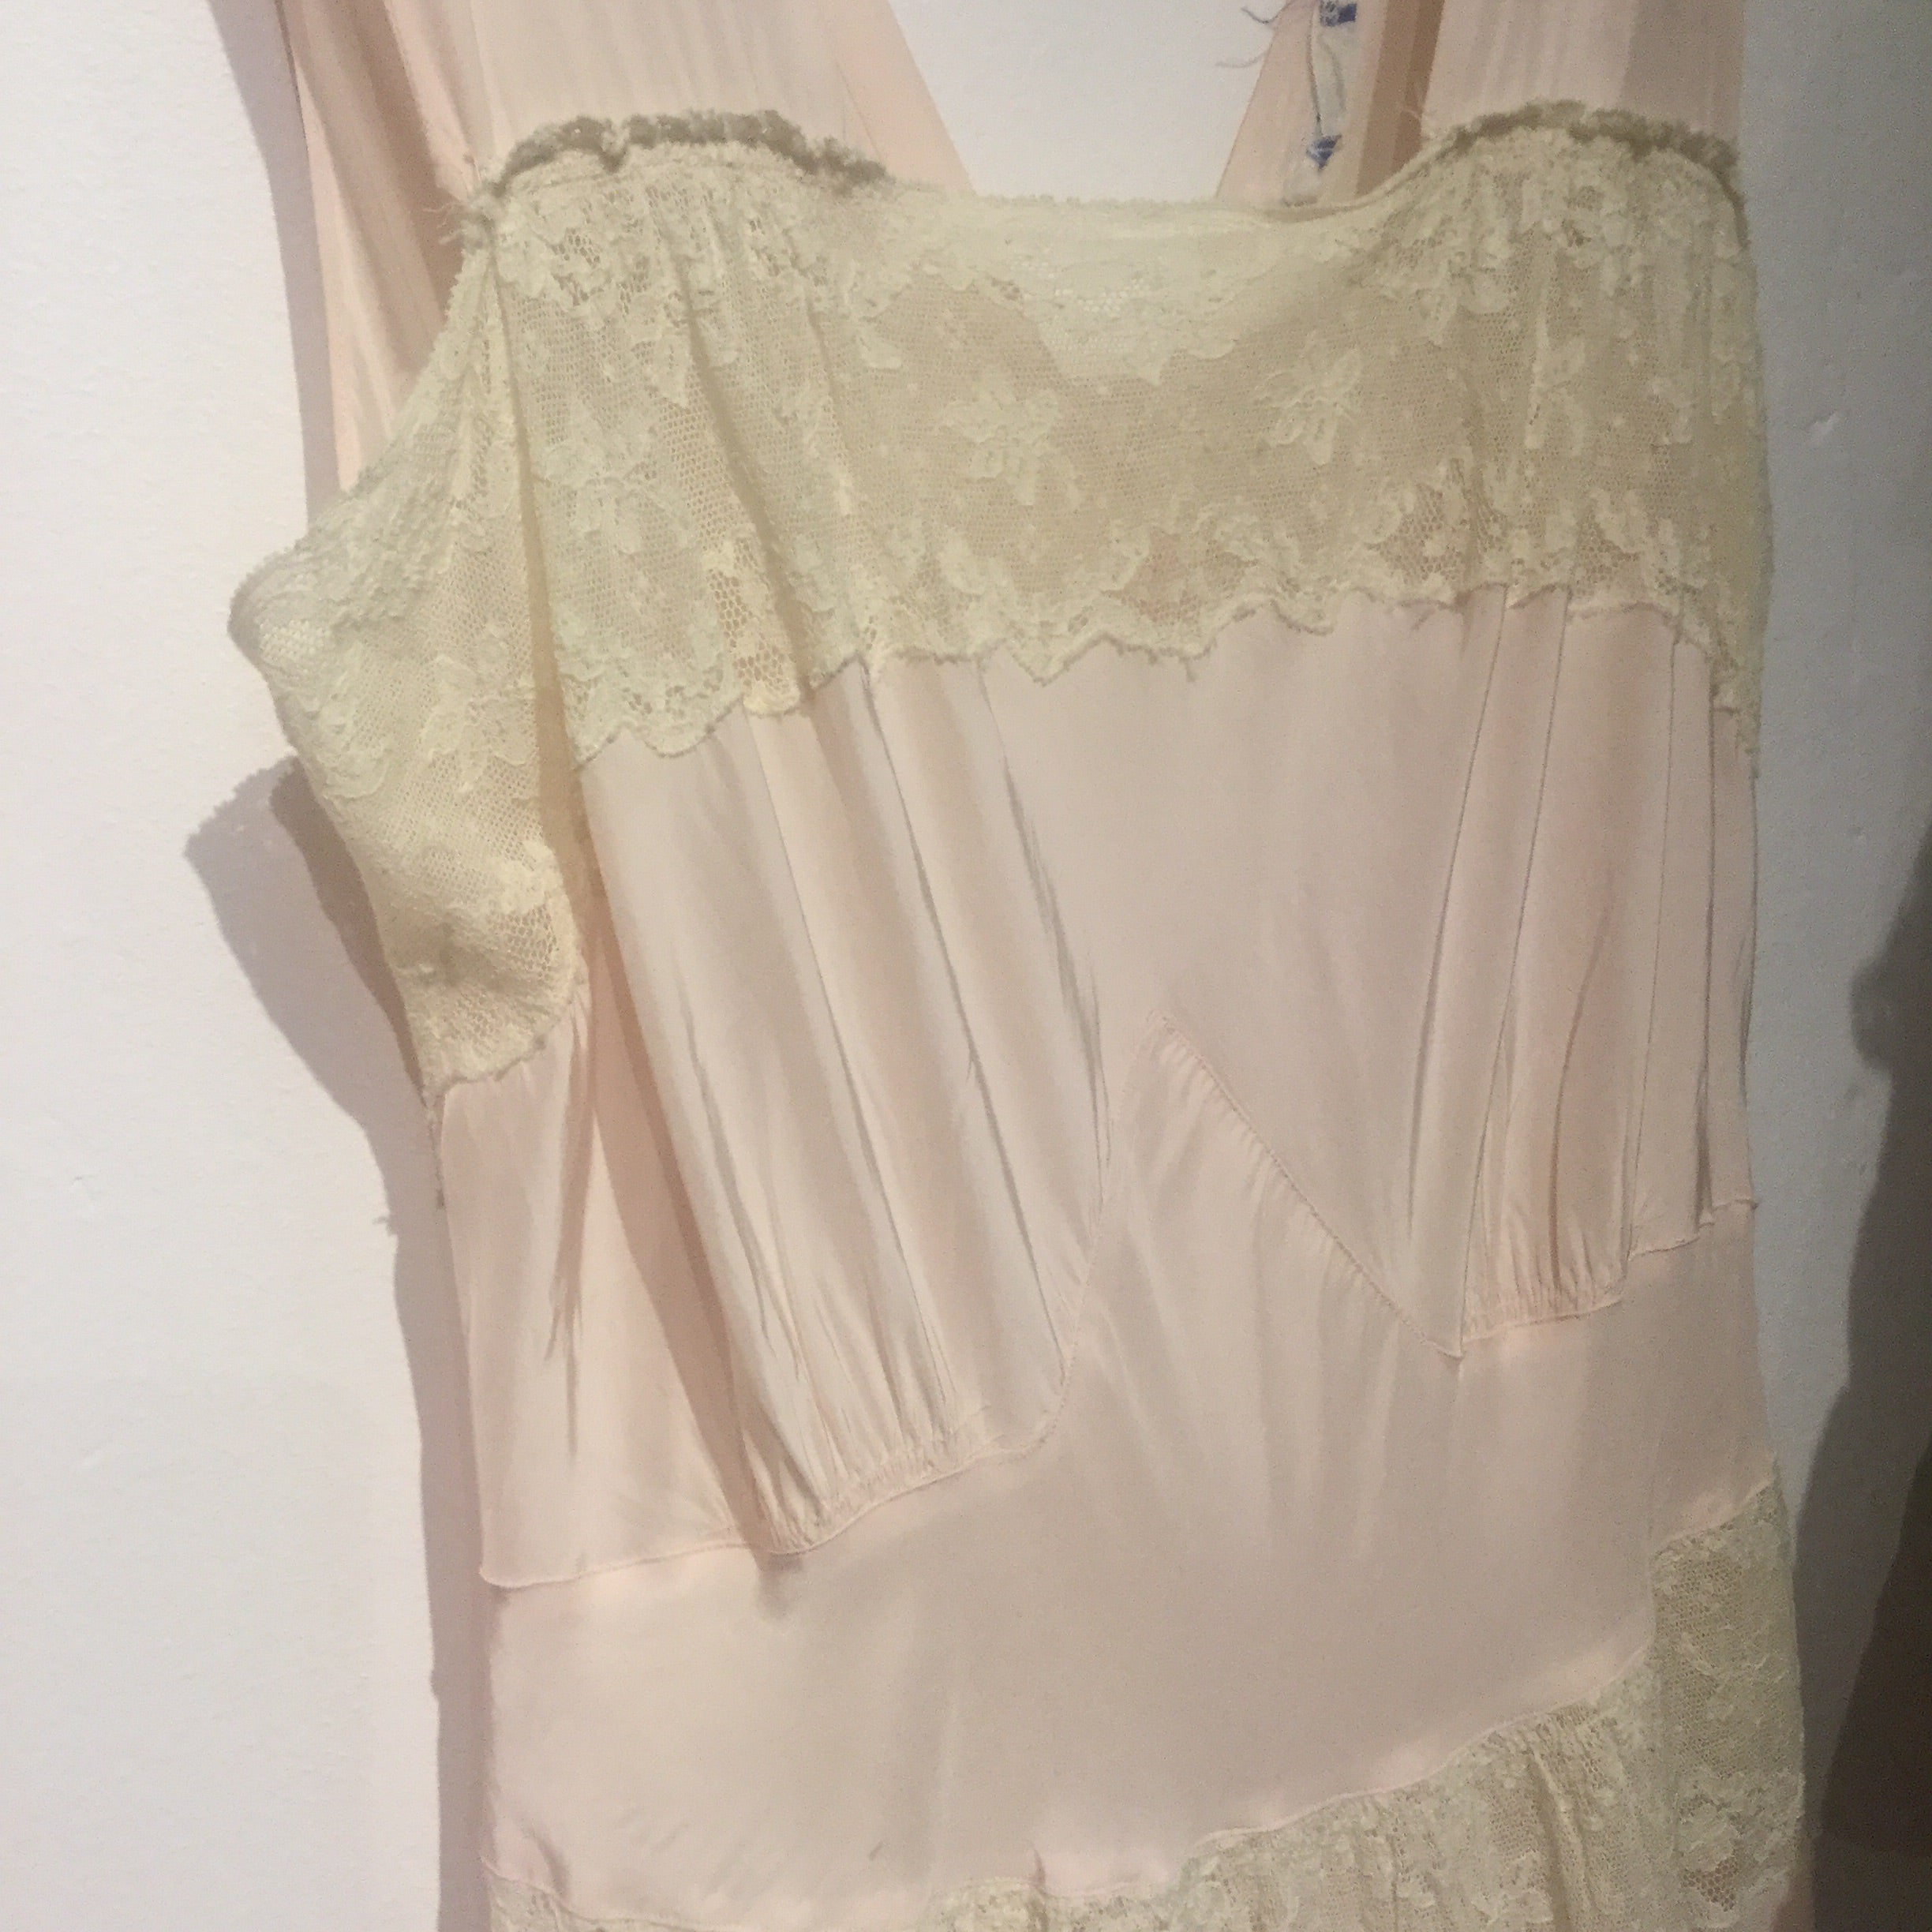 Powder Pink and cream lace nightgown 32/S/M #062